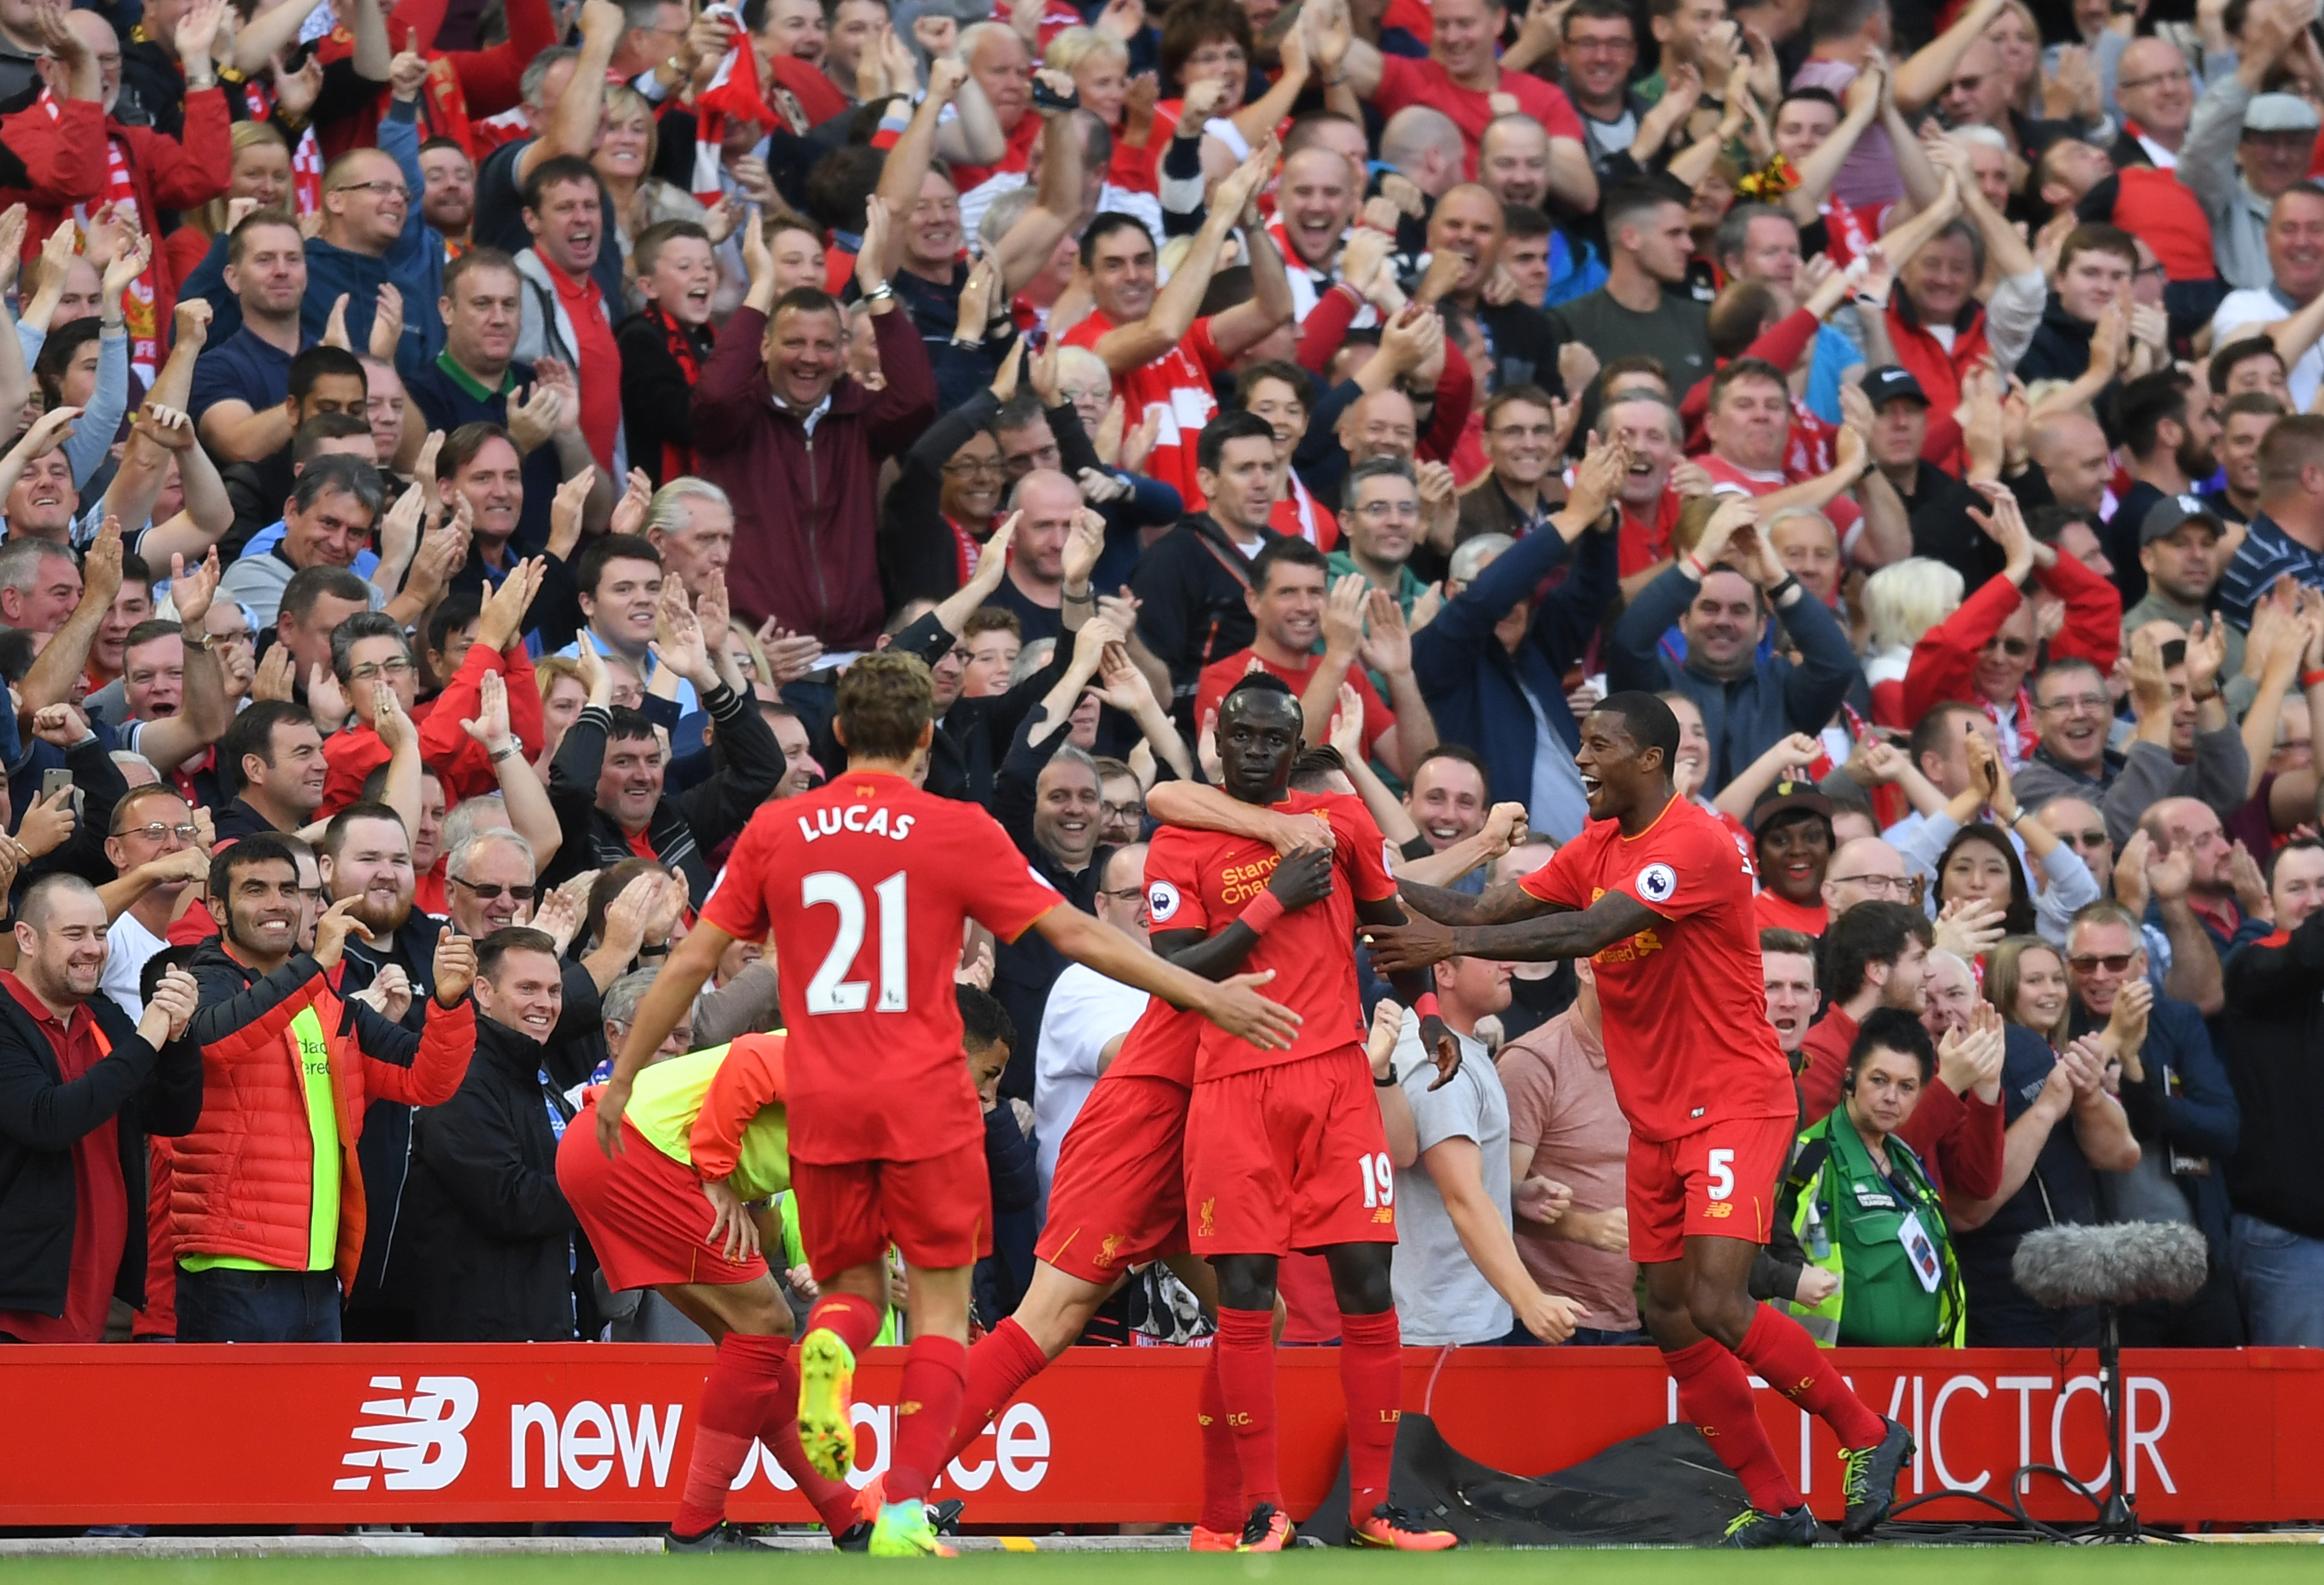 EPL 2016-17: Liverpool 4-1 Leicester - 5 talking points